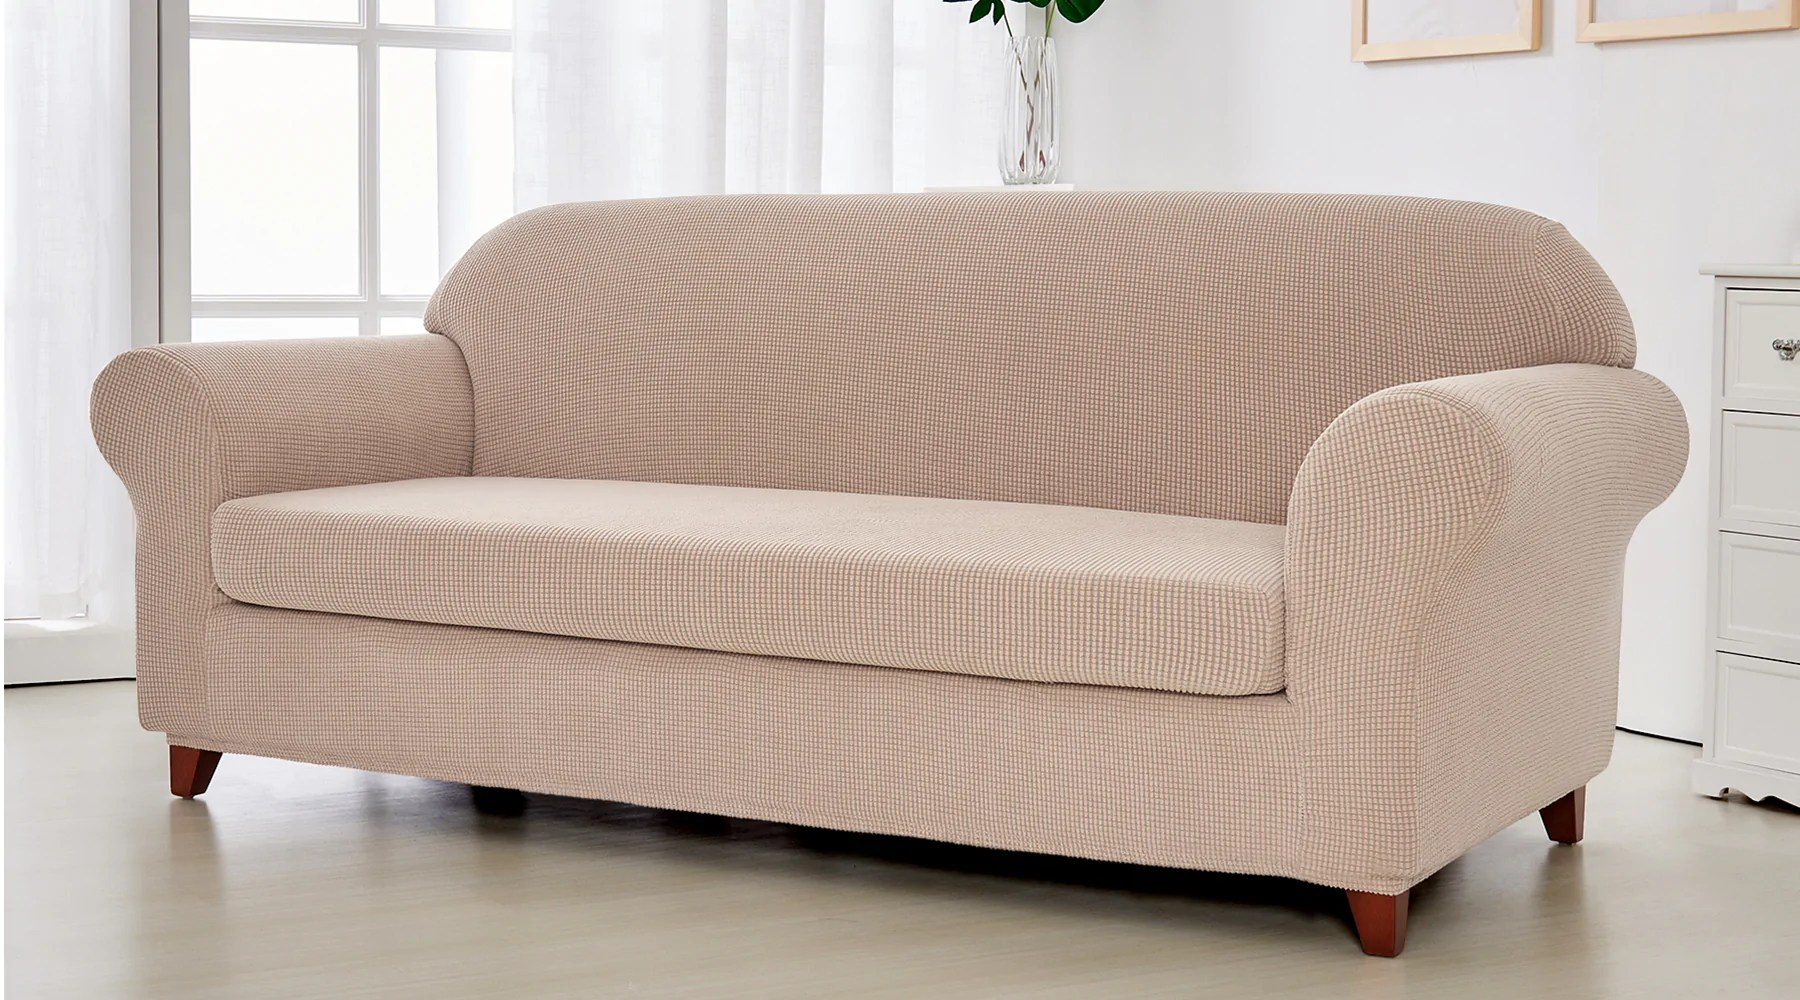 If You Want To Buy A Microfiber Couch You Should Read This